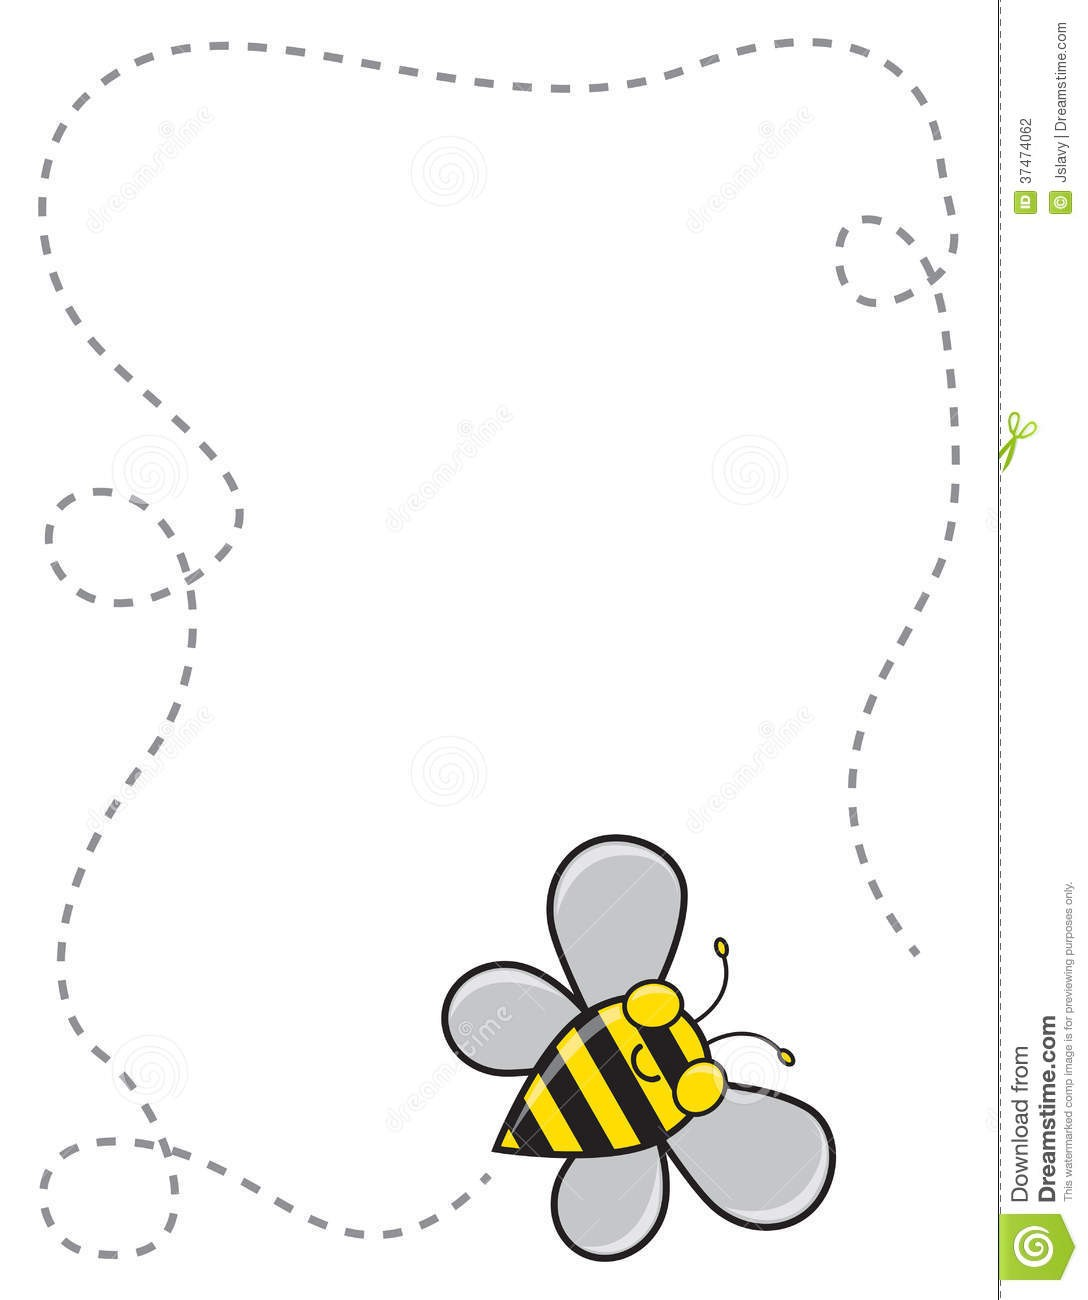 In Clipart Cartoon Bumble Bee Flying Trail Pencil And Color 1088.